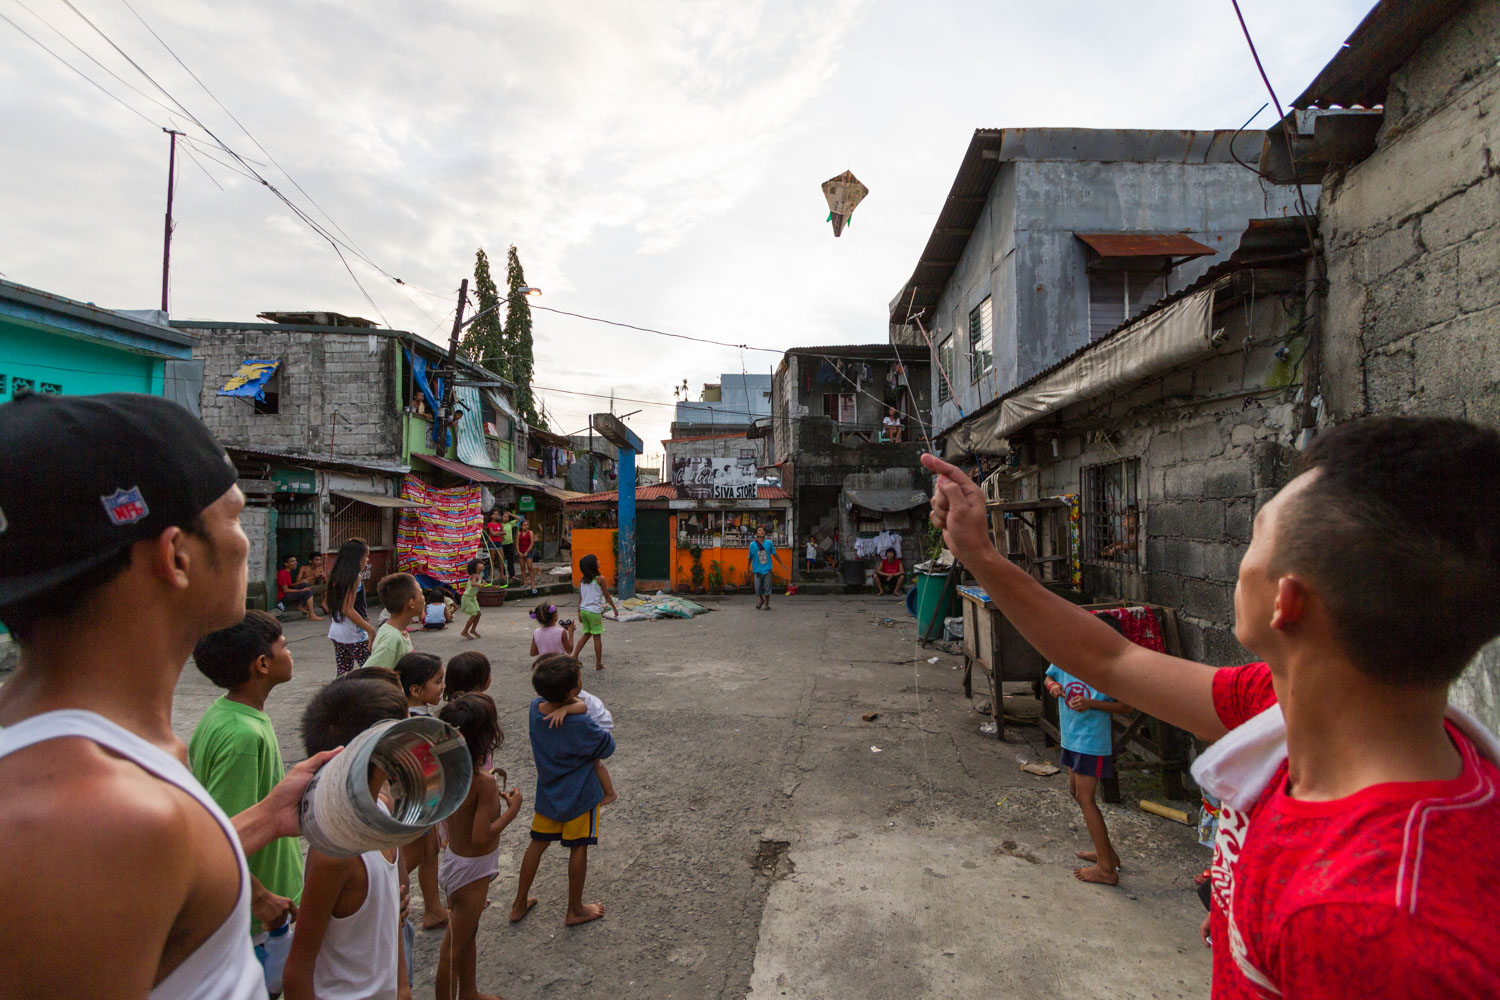 Kites are a very popular activity in the neighborhoods of Philippines. The gangs loves to play it. They glue crushed glass on the string and the goal is to cut opposite gangs kite string.Dagat Dagaatan, Caloocan, Metro Manila, Philippines - 19/10/2012.